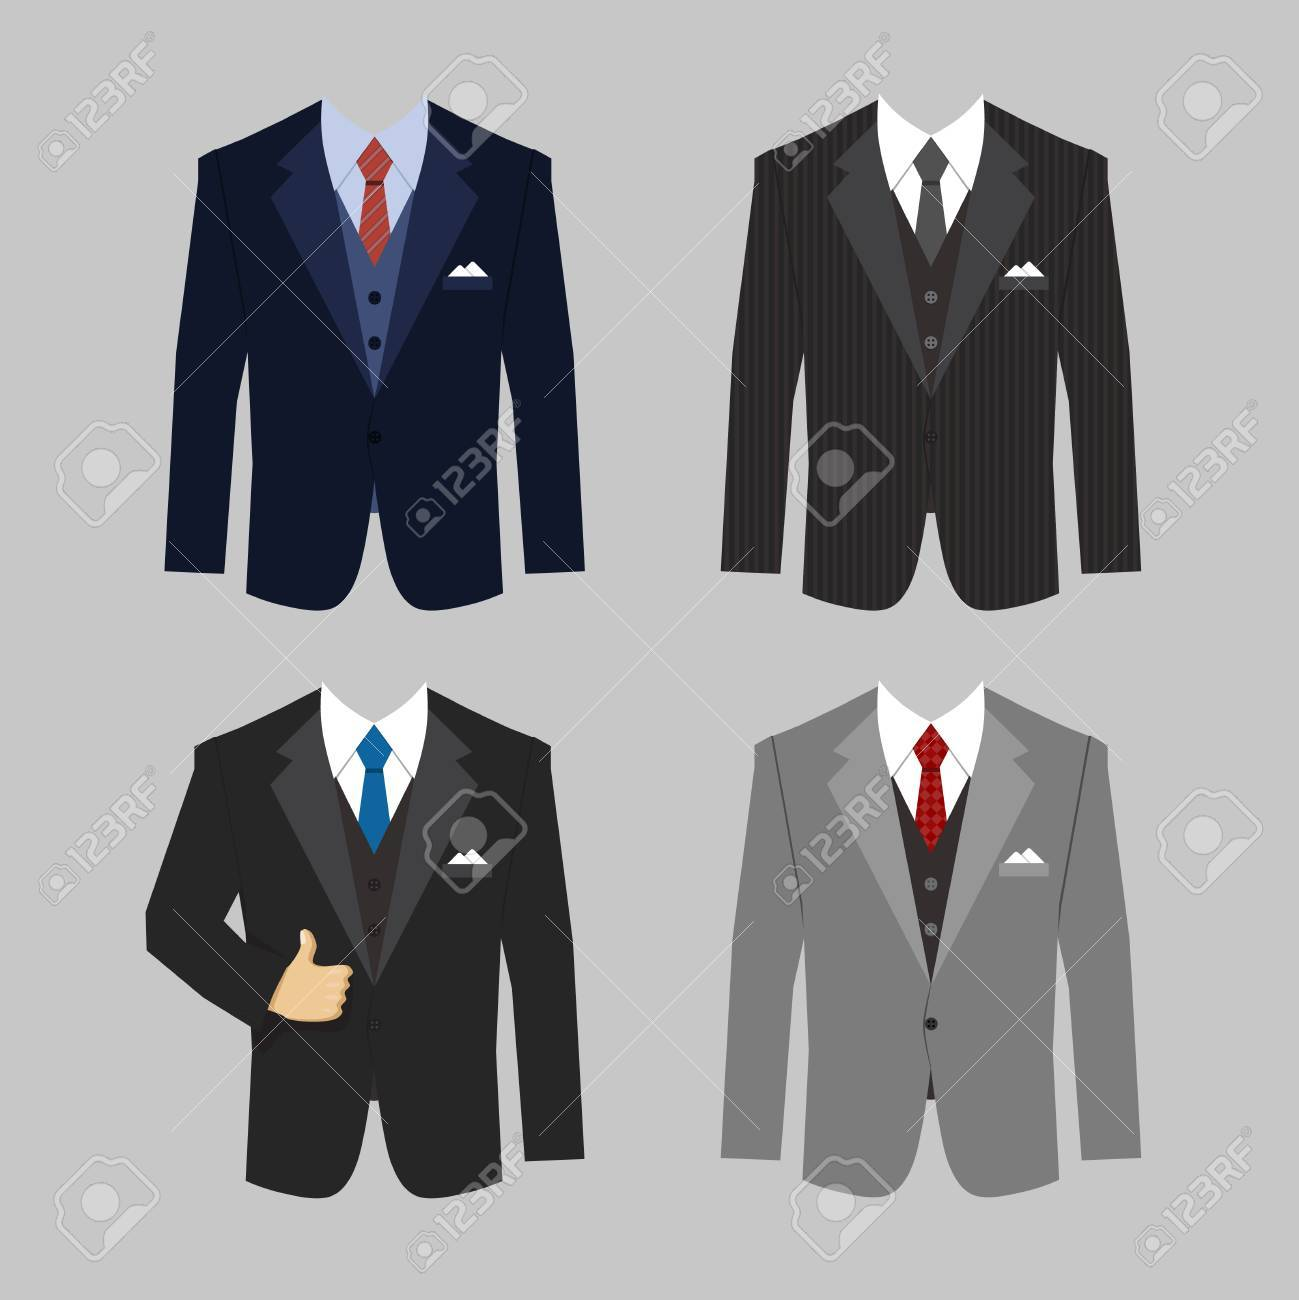 set of different colors business clothing suits vector eps10 illustration Stock Vector - 27163517